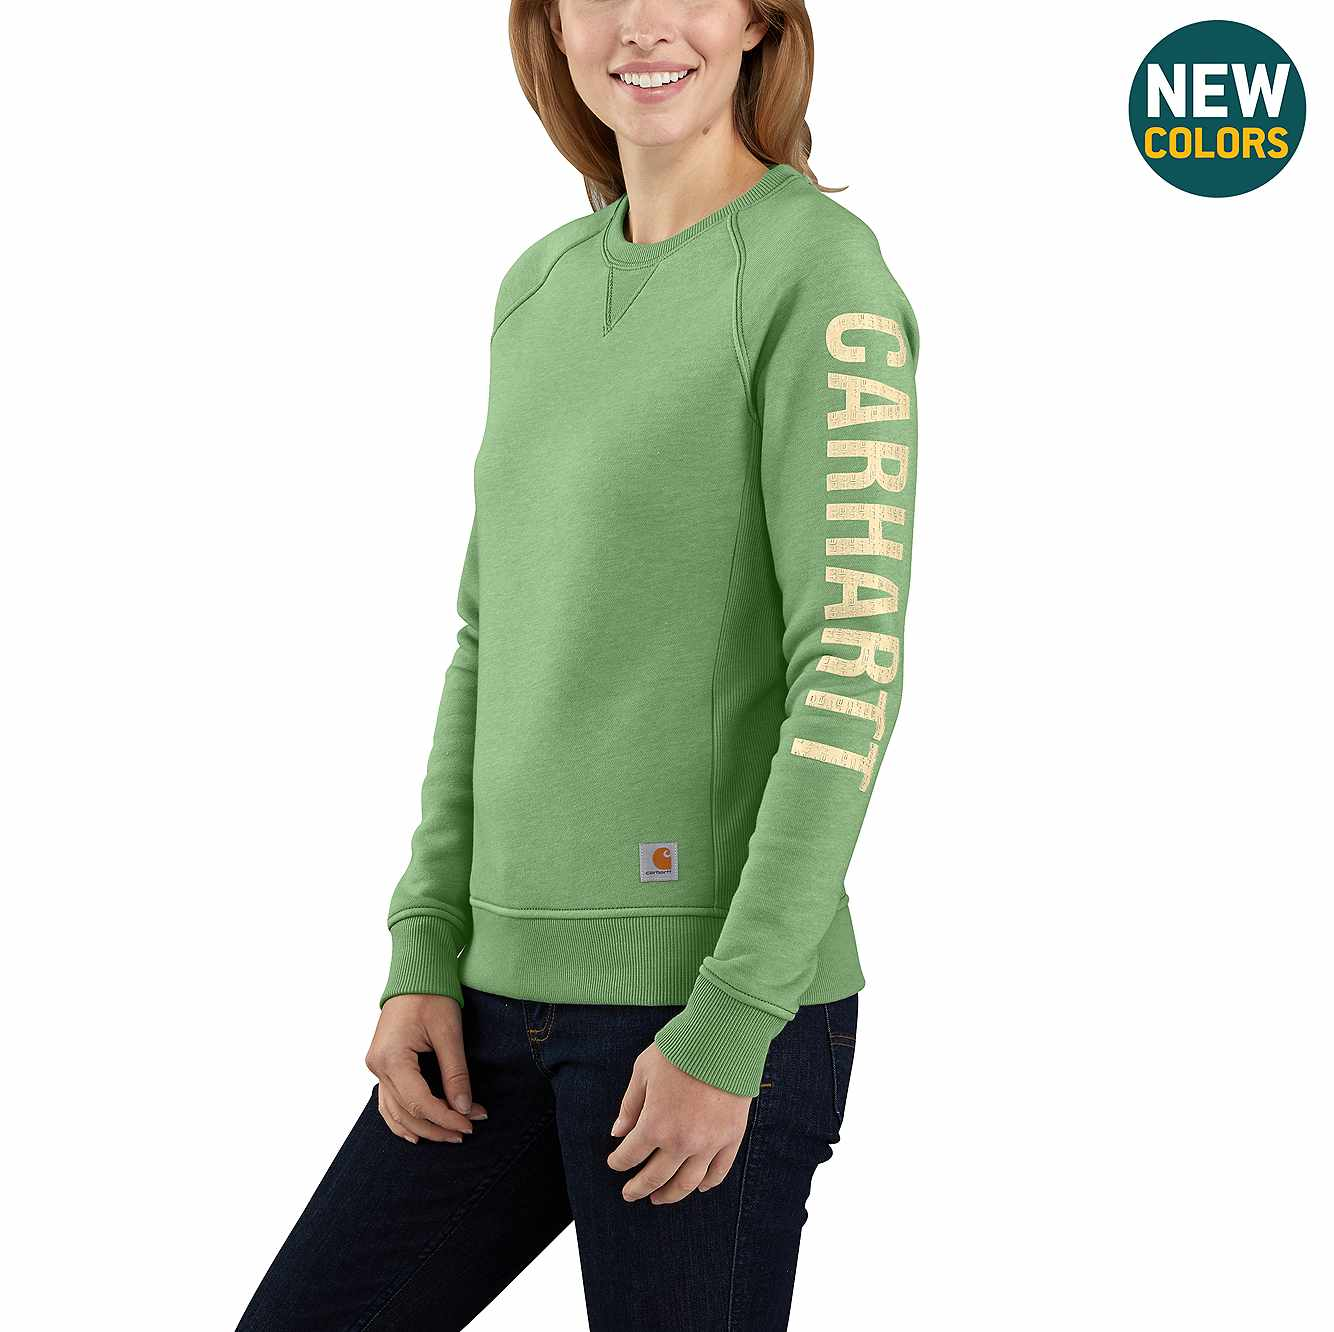 Picture of Carhartt® Relaxed Fit Midweight Crewneck Carhartt Graphic Sweatshirt in Boreal Heather